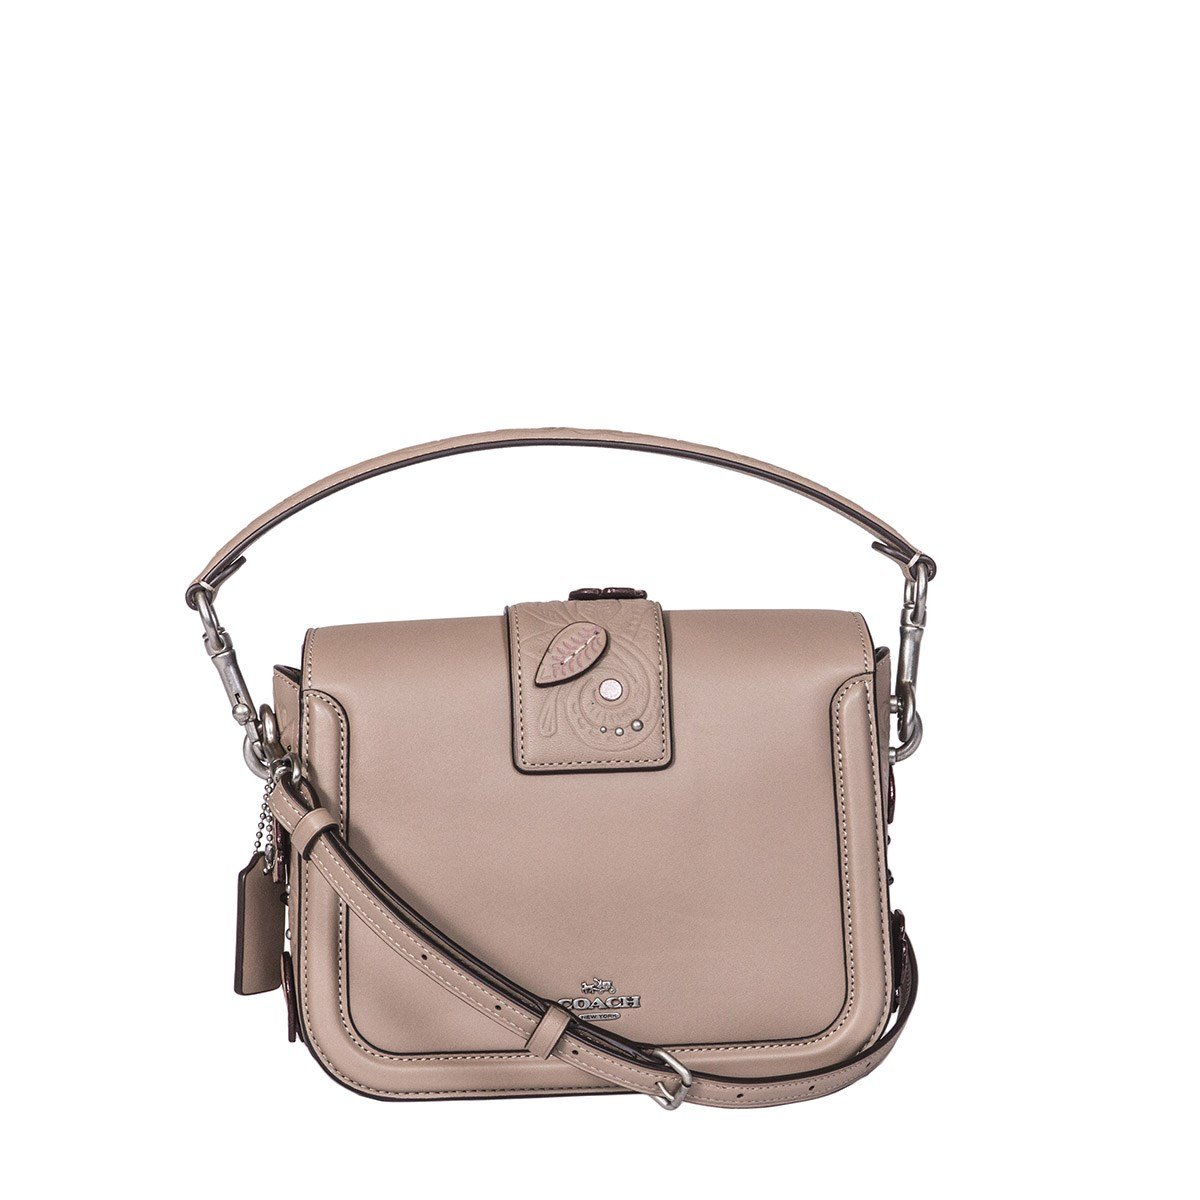 8c9892d0efc0 Coach Women s 12588Lhmmt Grey Suede Shoulder Bag  Amazon.co.uk  Clothing